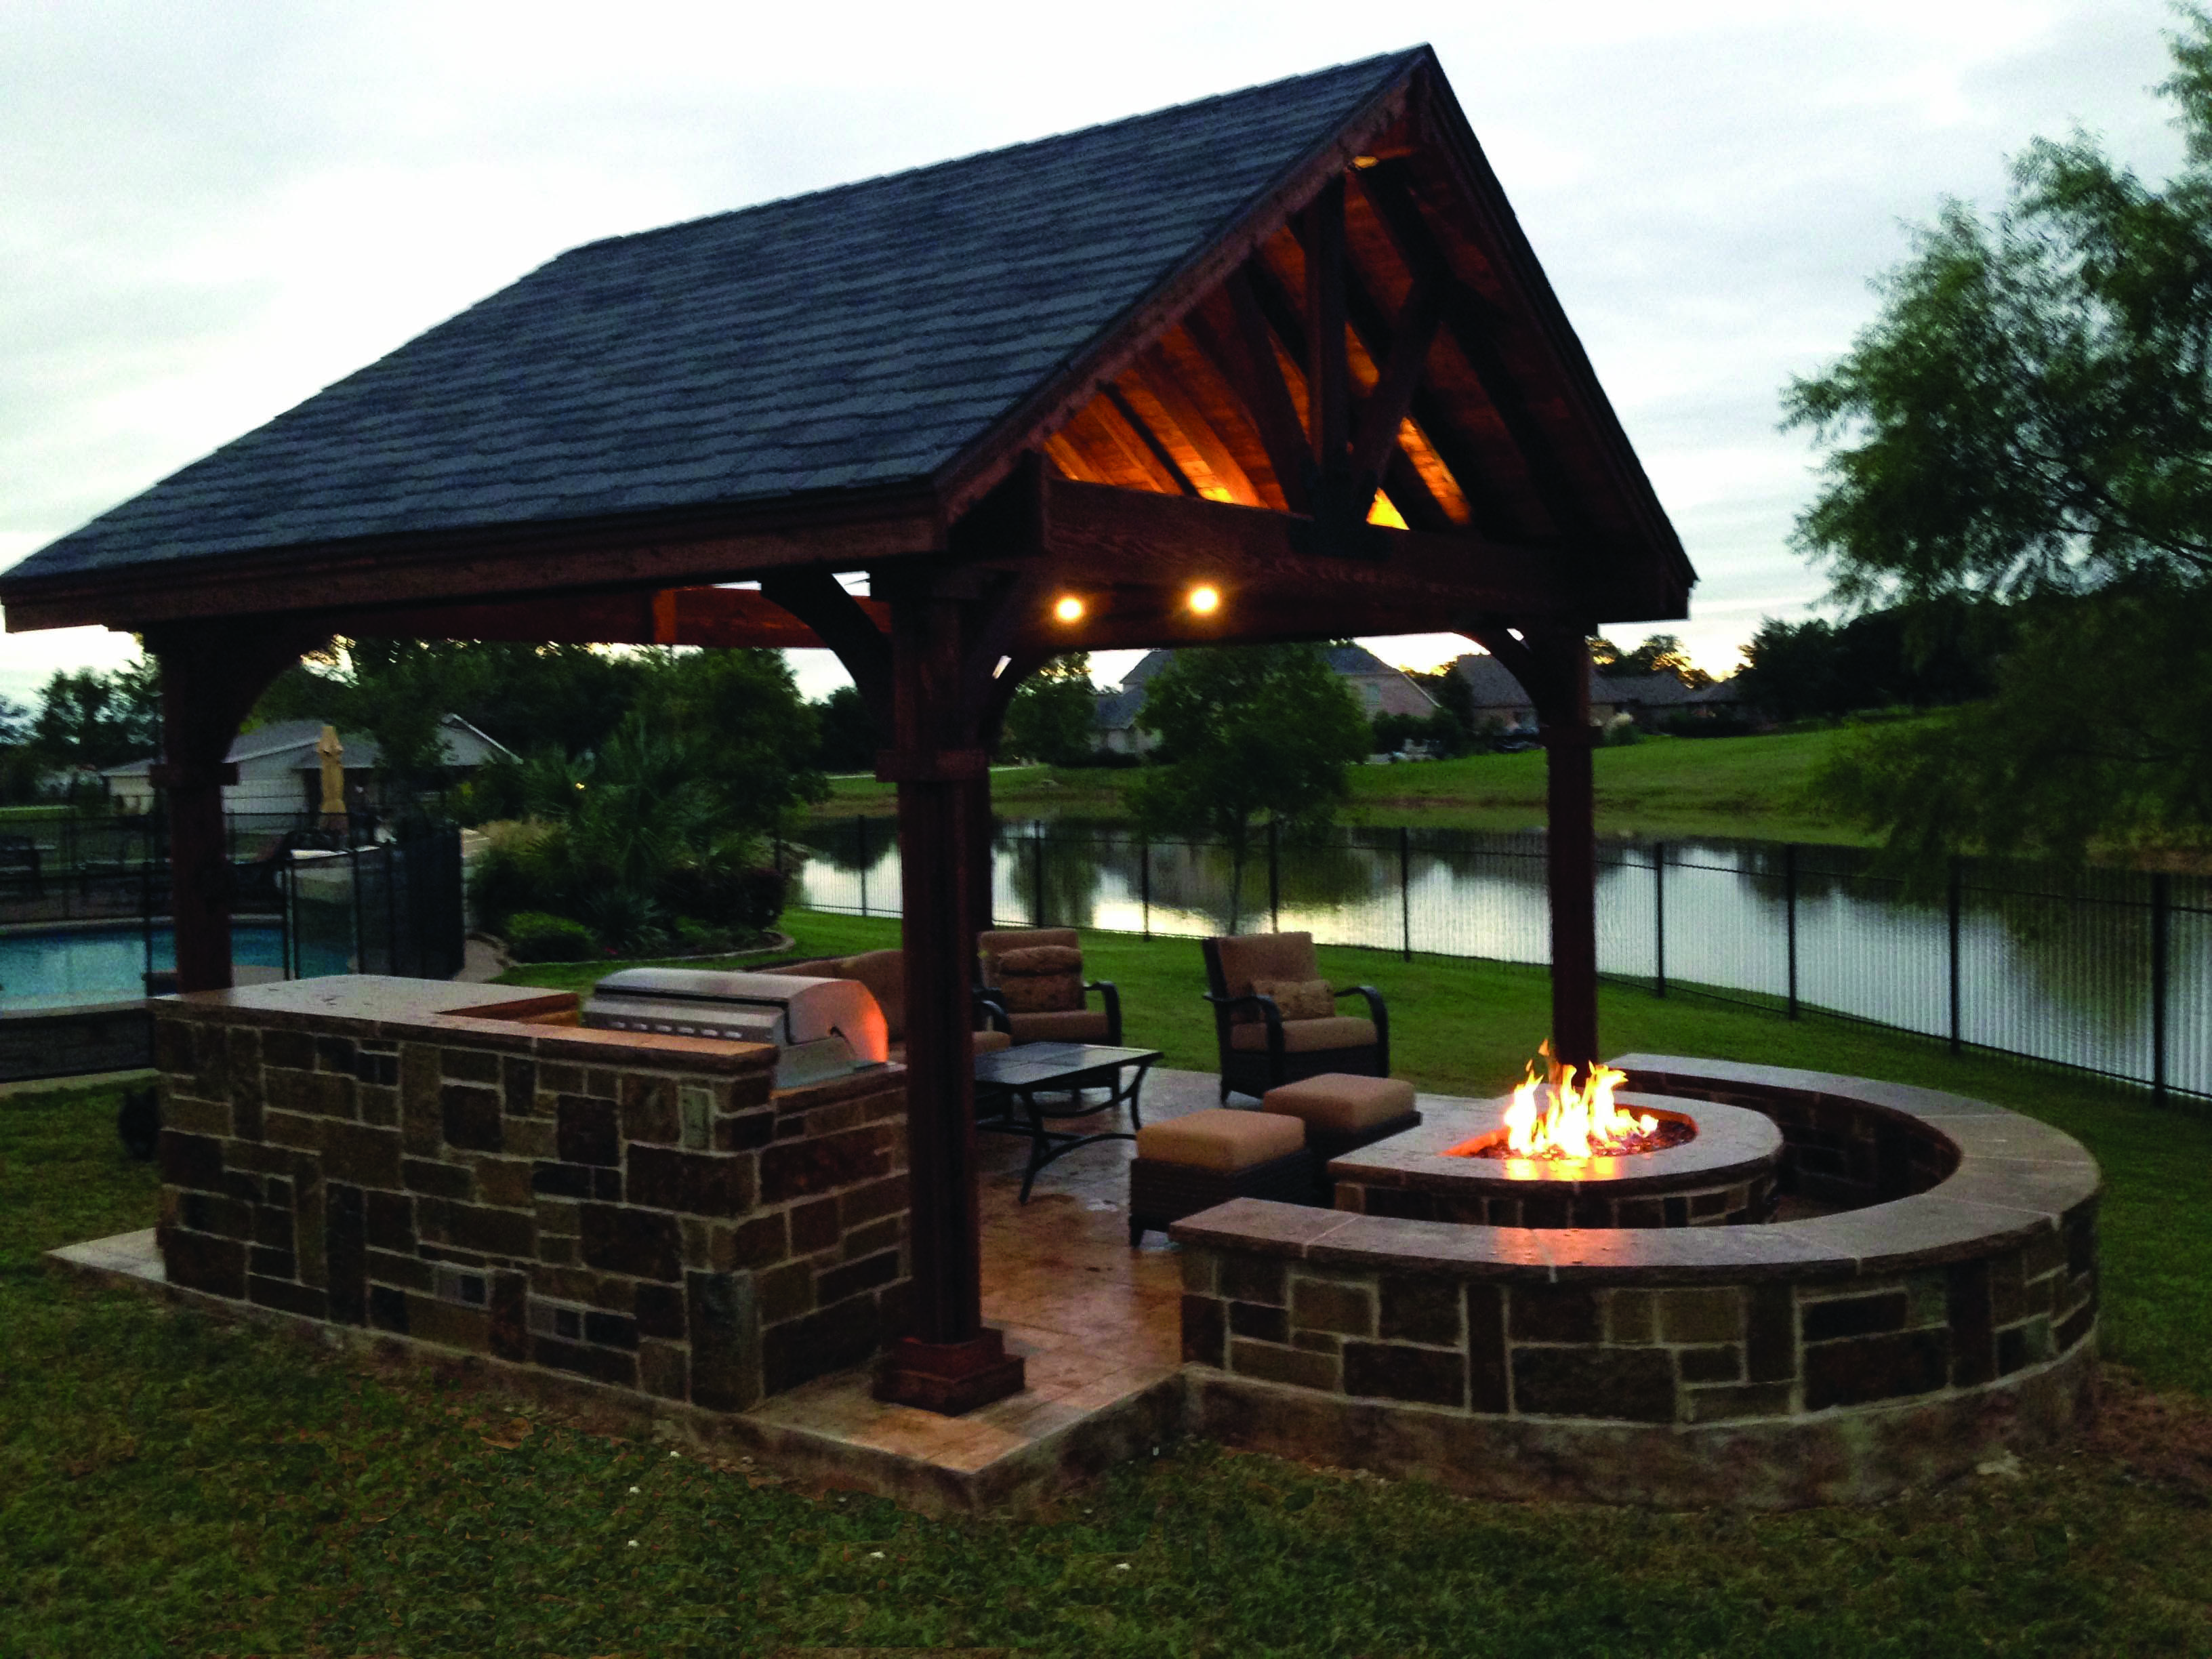 Fire Place Design Concepts For An Elegant Exterior Space Homes Tre Backyard Pavilion Backyard Gazebo Backyard Fire,United Airline Baggage Fees International